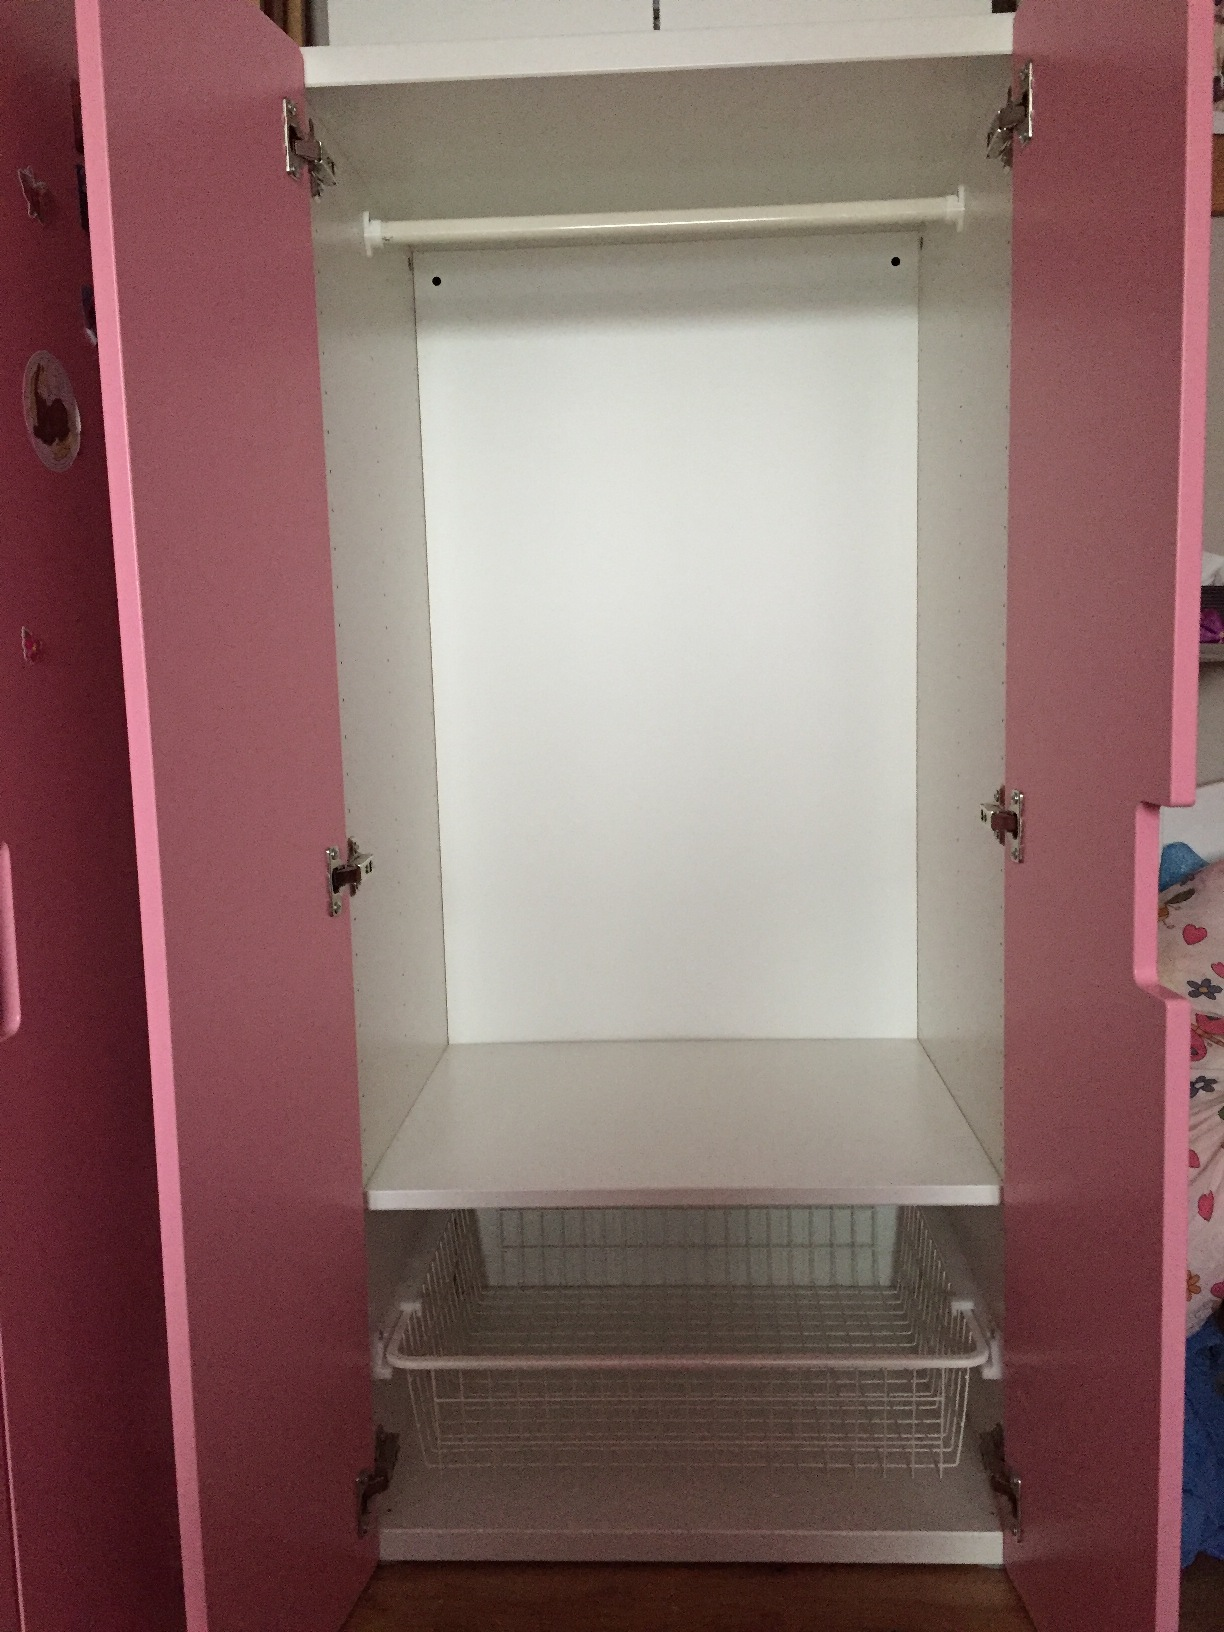 ikea stuva kinder kleiderschrank 128x60x50 cm w scheschrank schrank pink weiss ebay. Black Bedroom Furniture Sets. Home Design Ideas